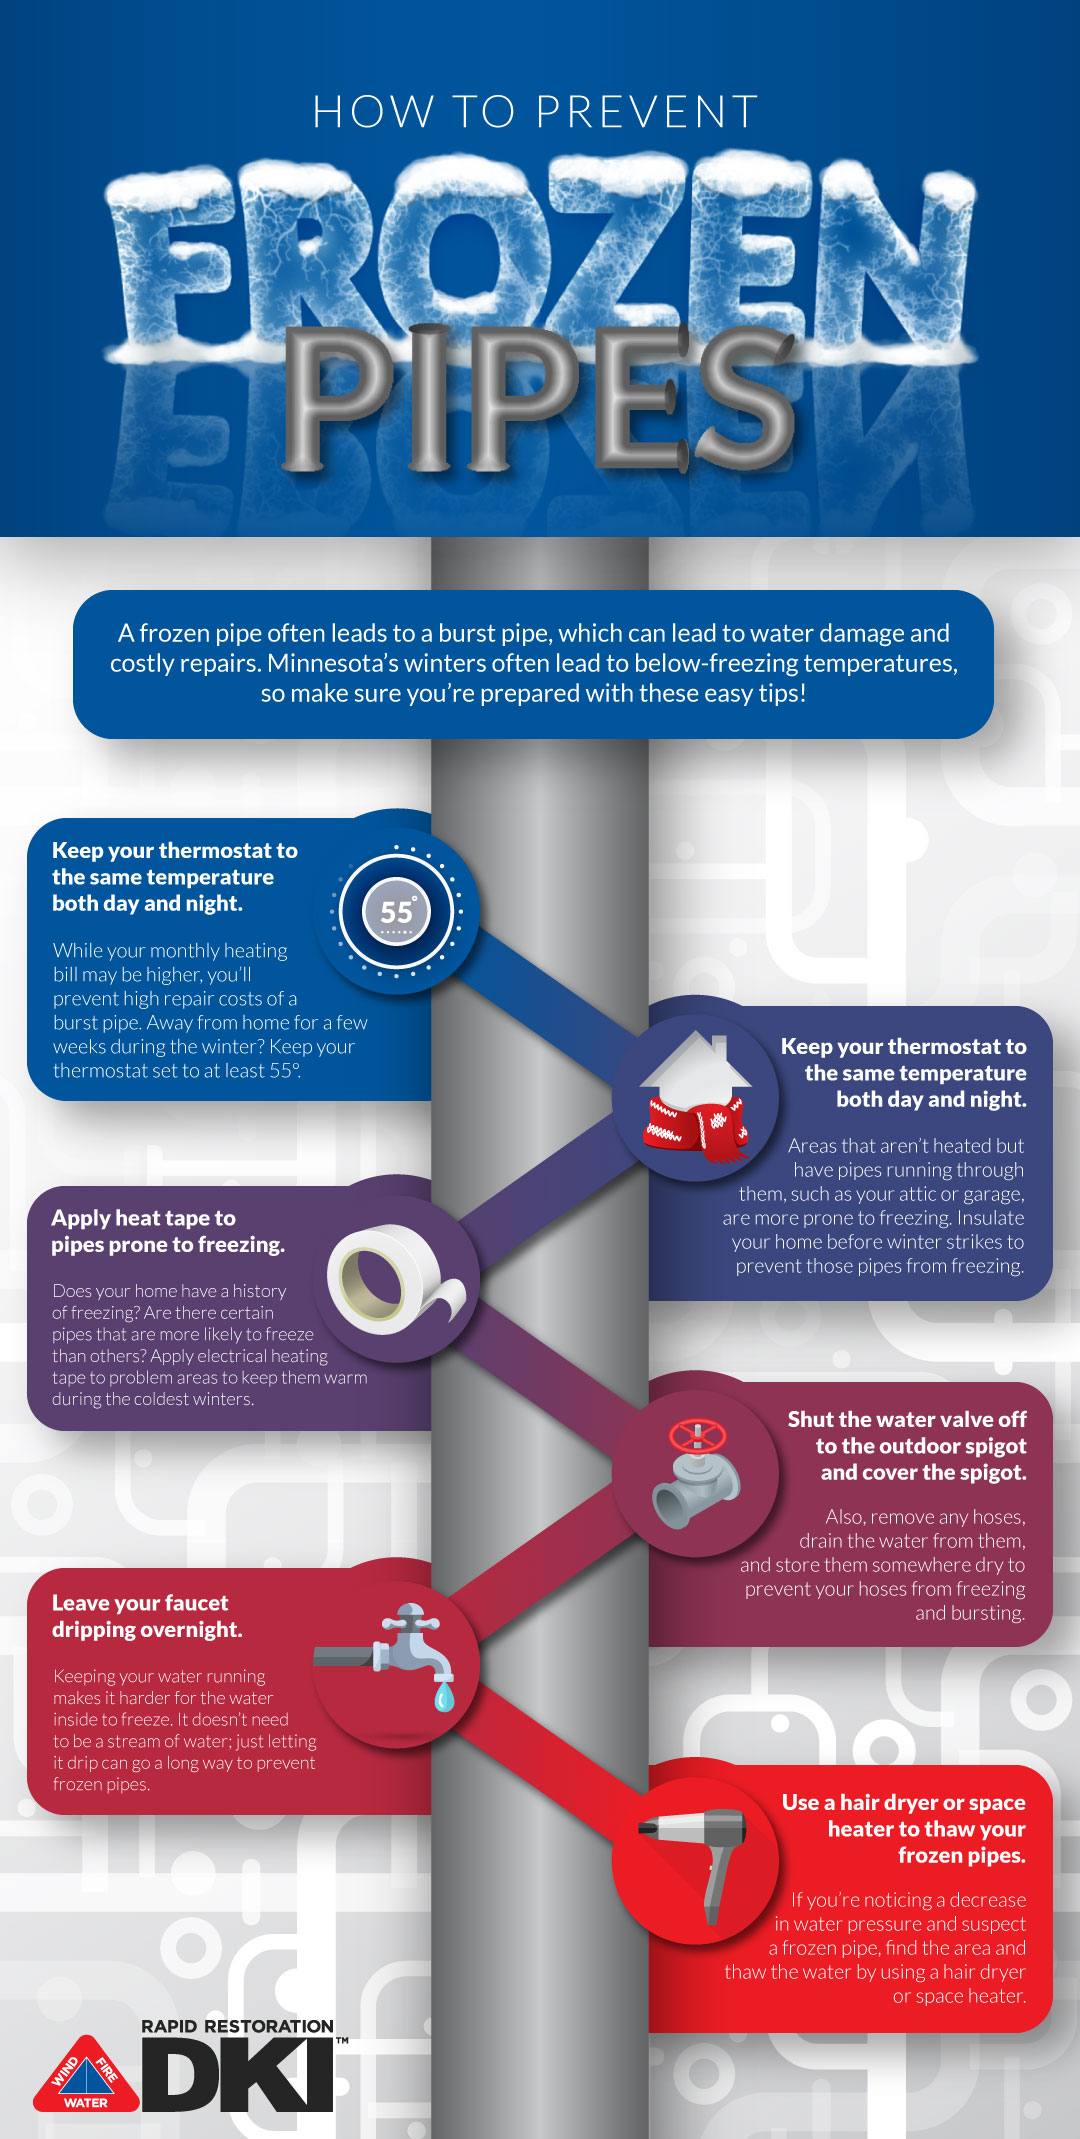 An infographic outlining how to prevent frozen pipes.